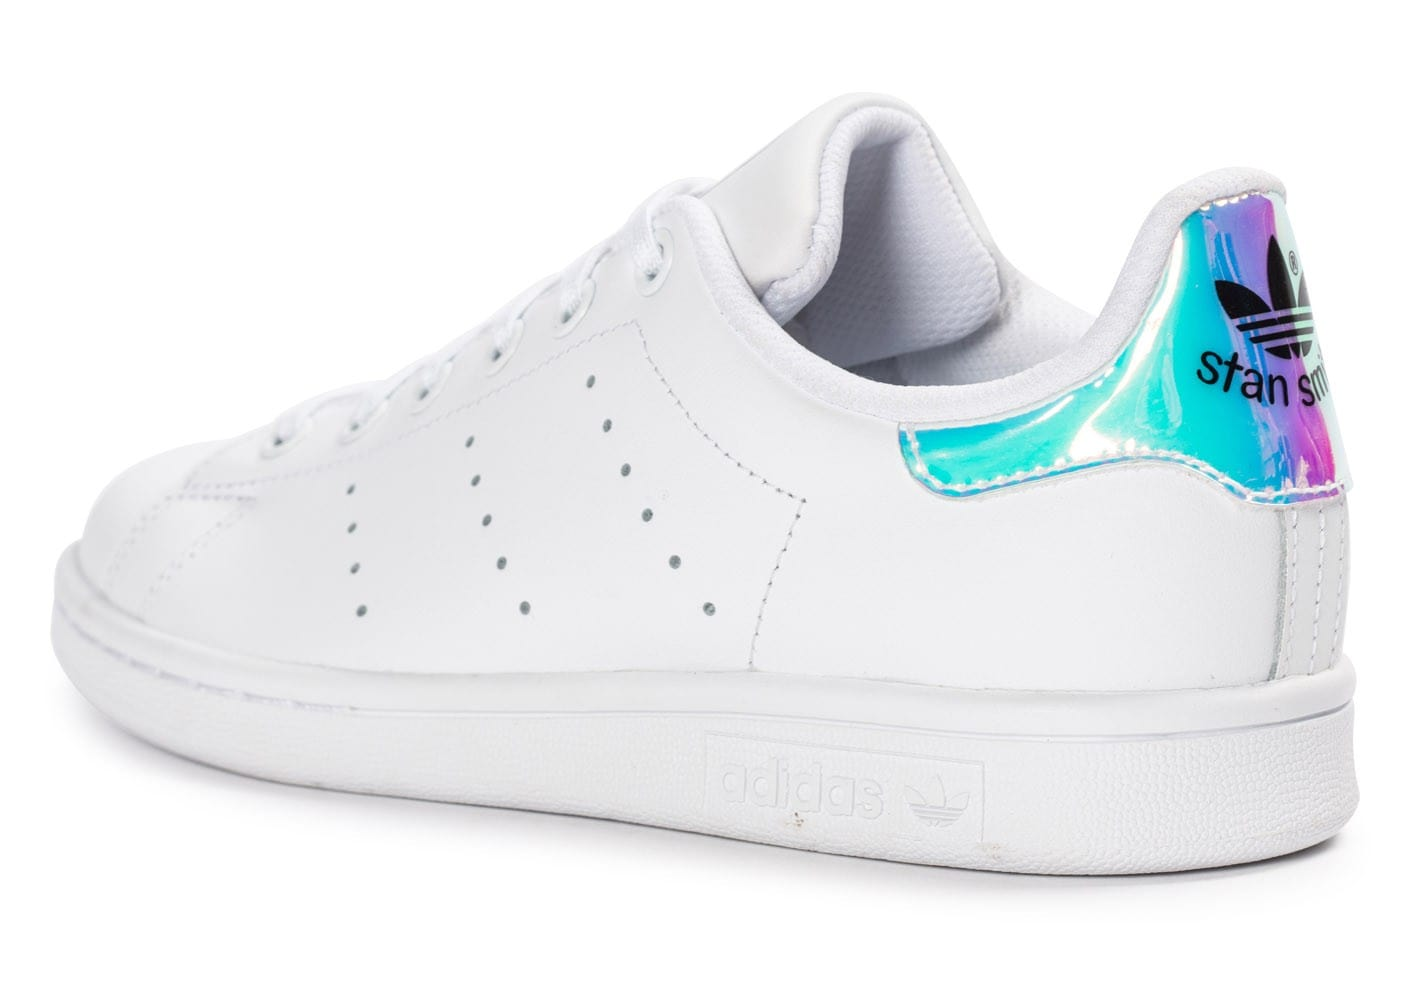 adidas stan smith iridescente blanche chaussures adidas. Black Bedroom Furniture Sets. Home Design Ideas